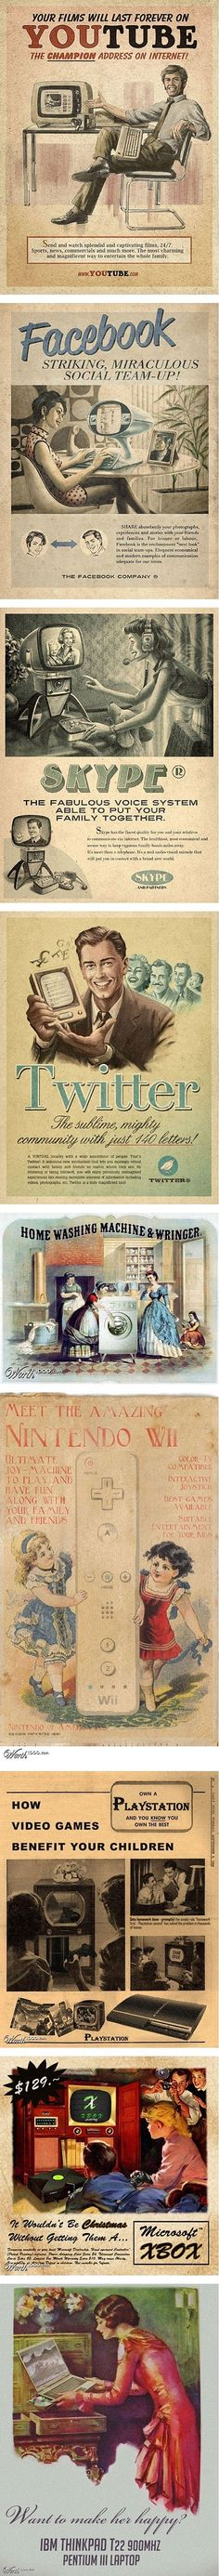 funny-old-ads-new-products